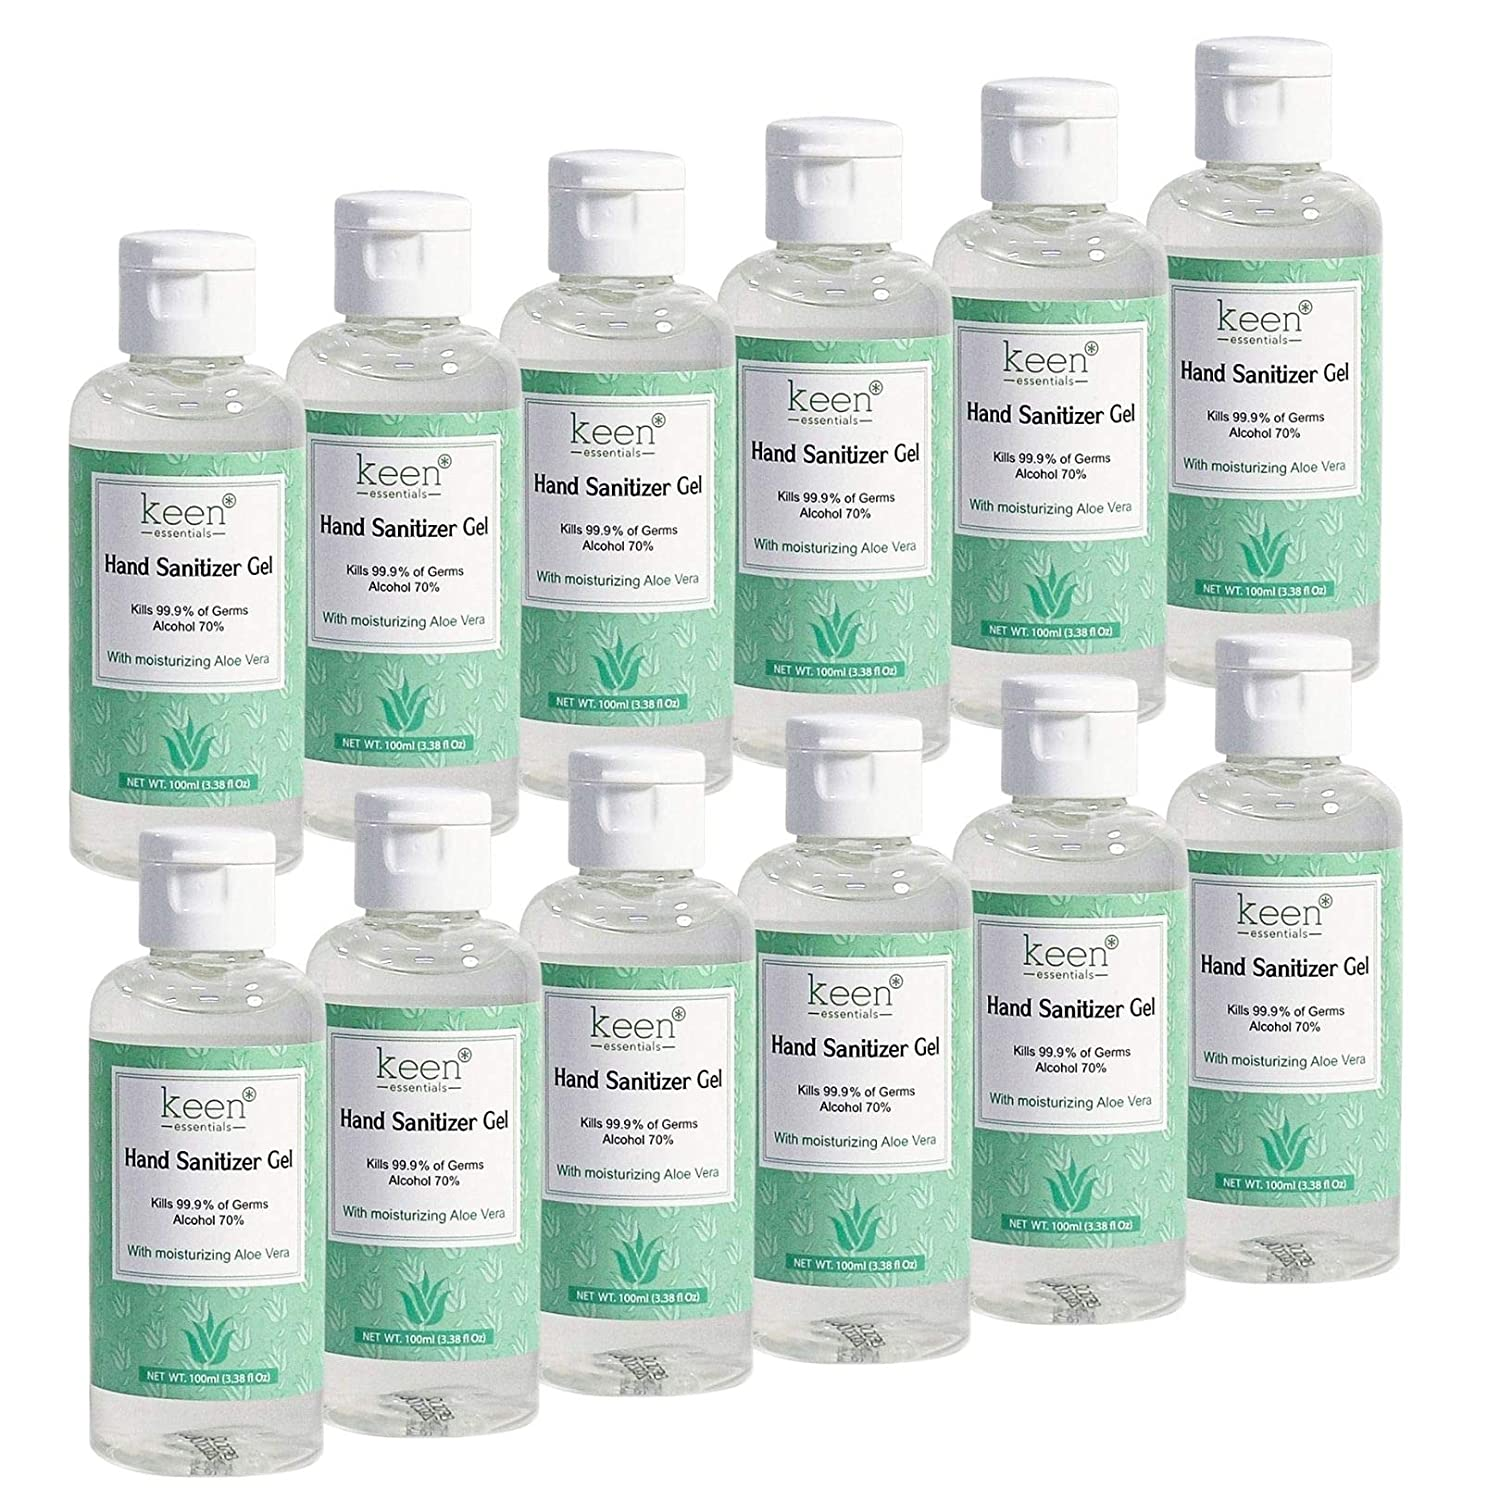 KEEN Hand Sanitizer Gel Credence 70% Alcohol Aloe with of Vera 12 Pack Under blast sales